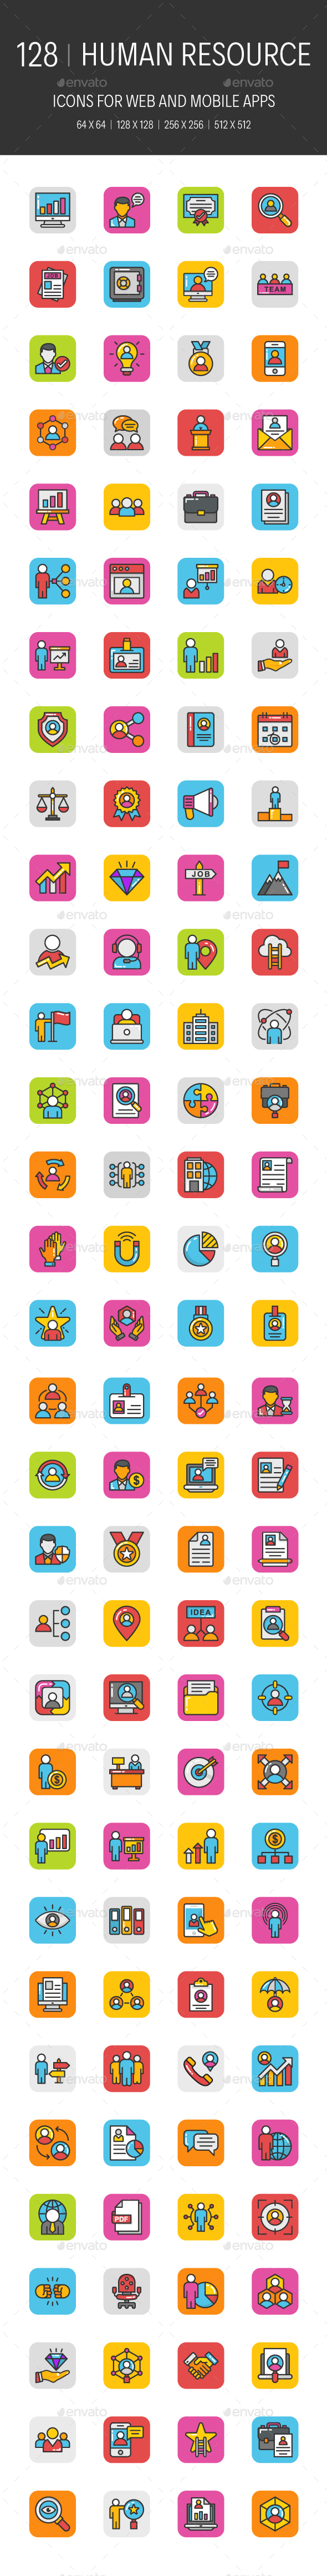 128 Human Resource Icons - Icons